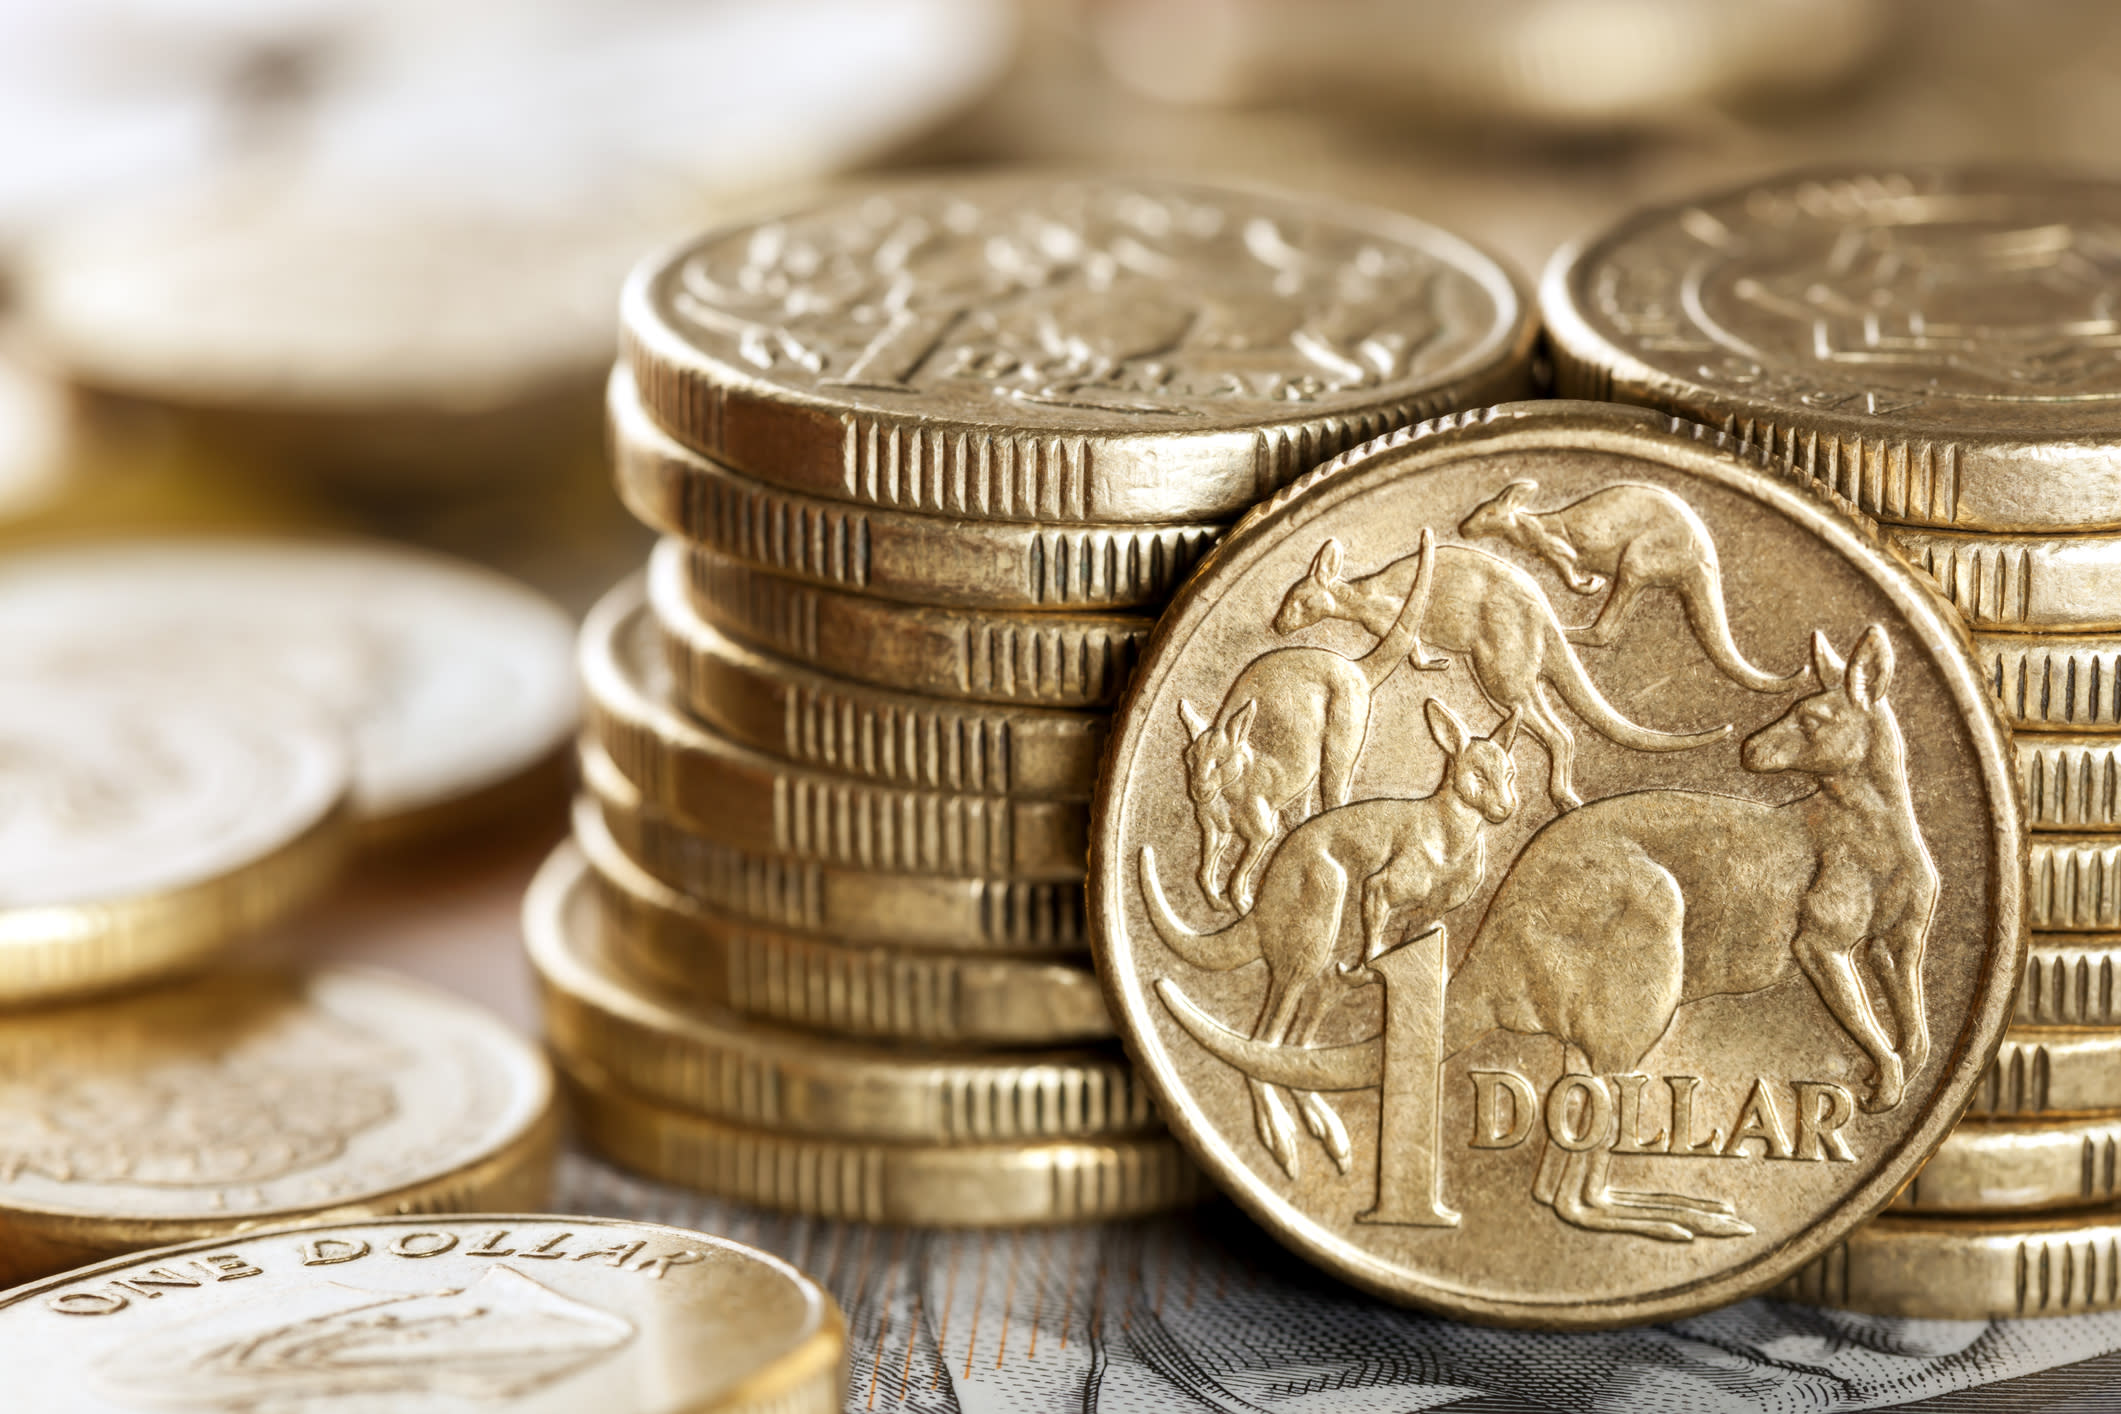 Aussie dollar faces a bleak outlook as markets take a beating